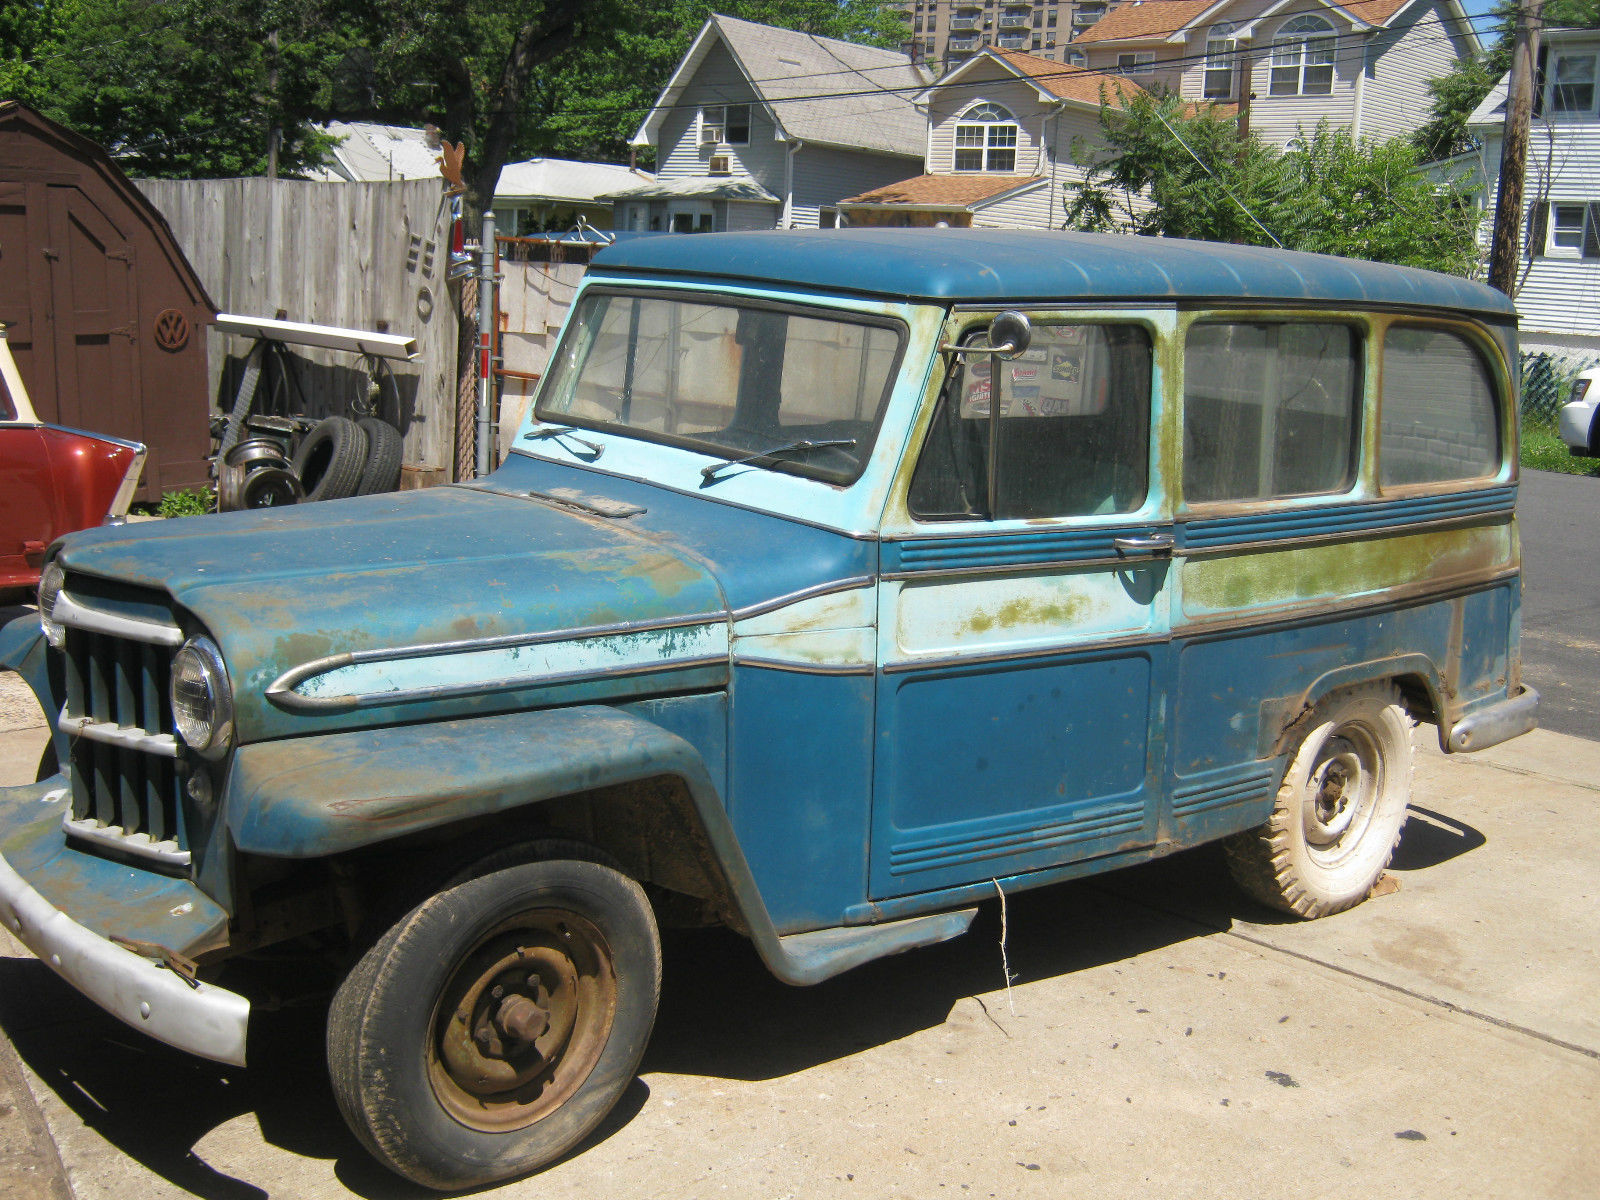 Staten Island Jeep >> 1961 jeep station wagon running project clean pa title,2 wheel drive,2 door,rod - Classic Jeep ...